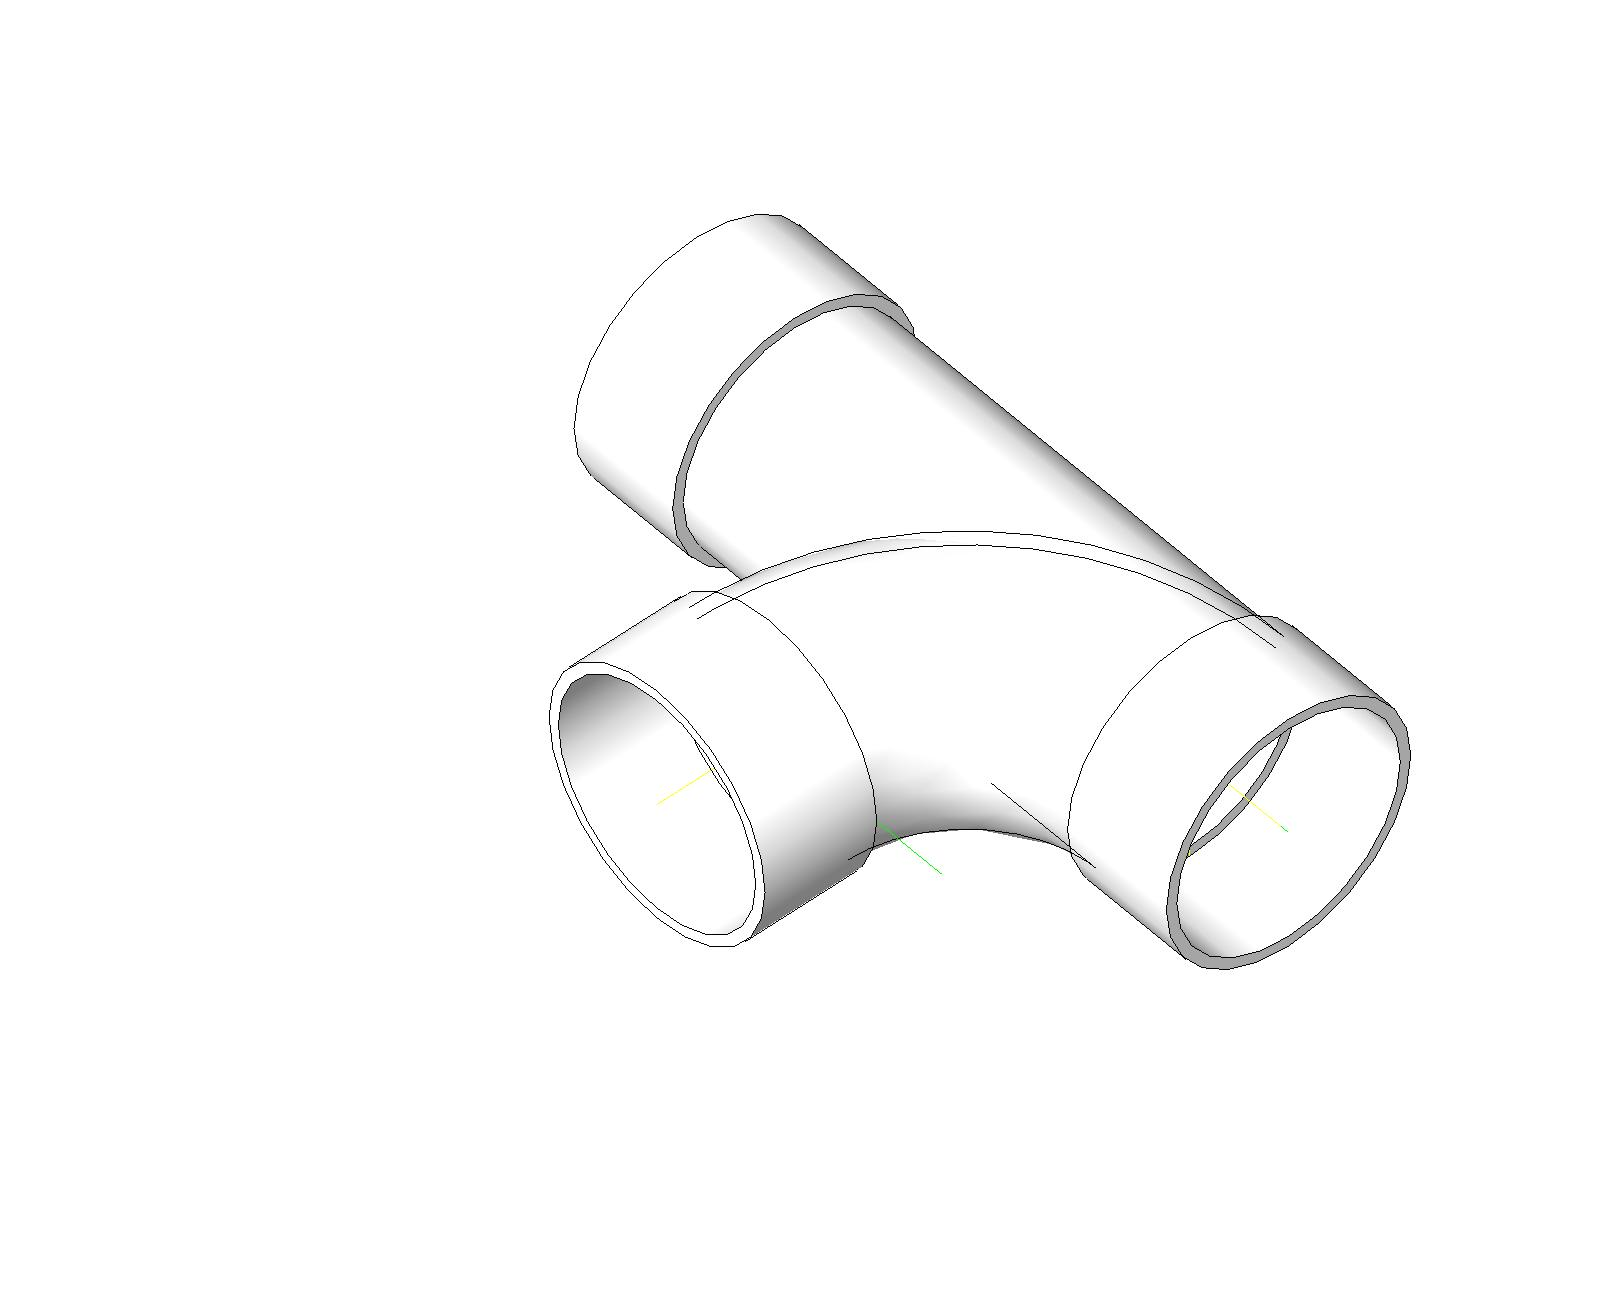 Pipe Fitting Cad Drawings